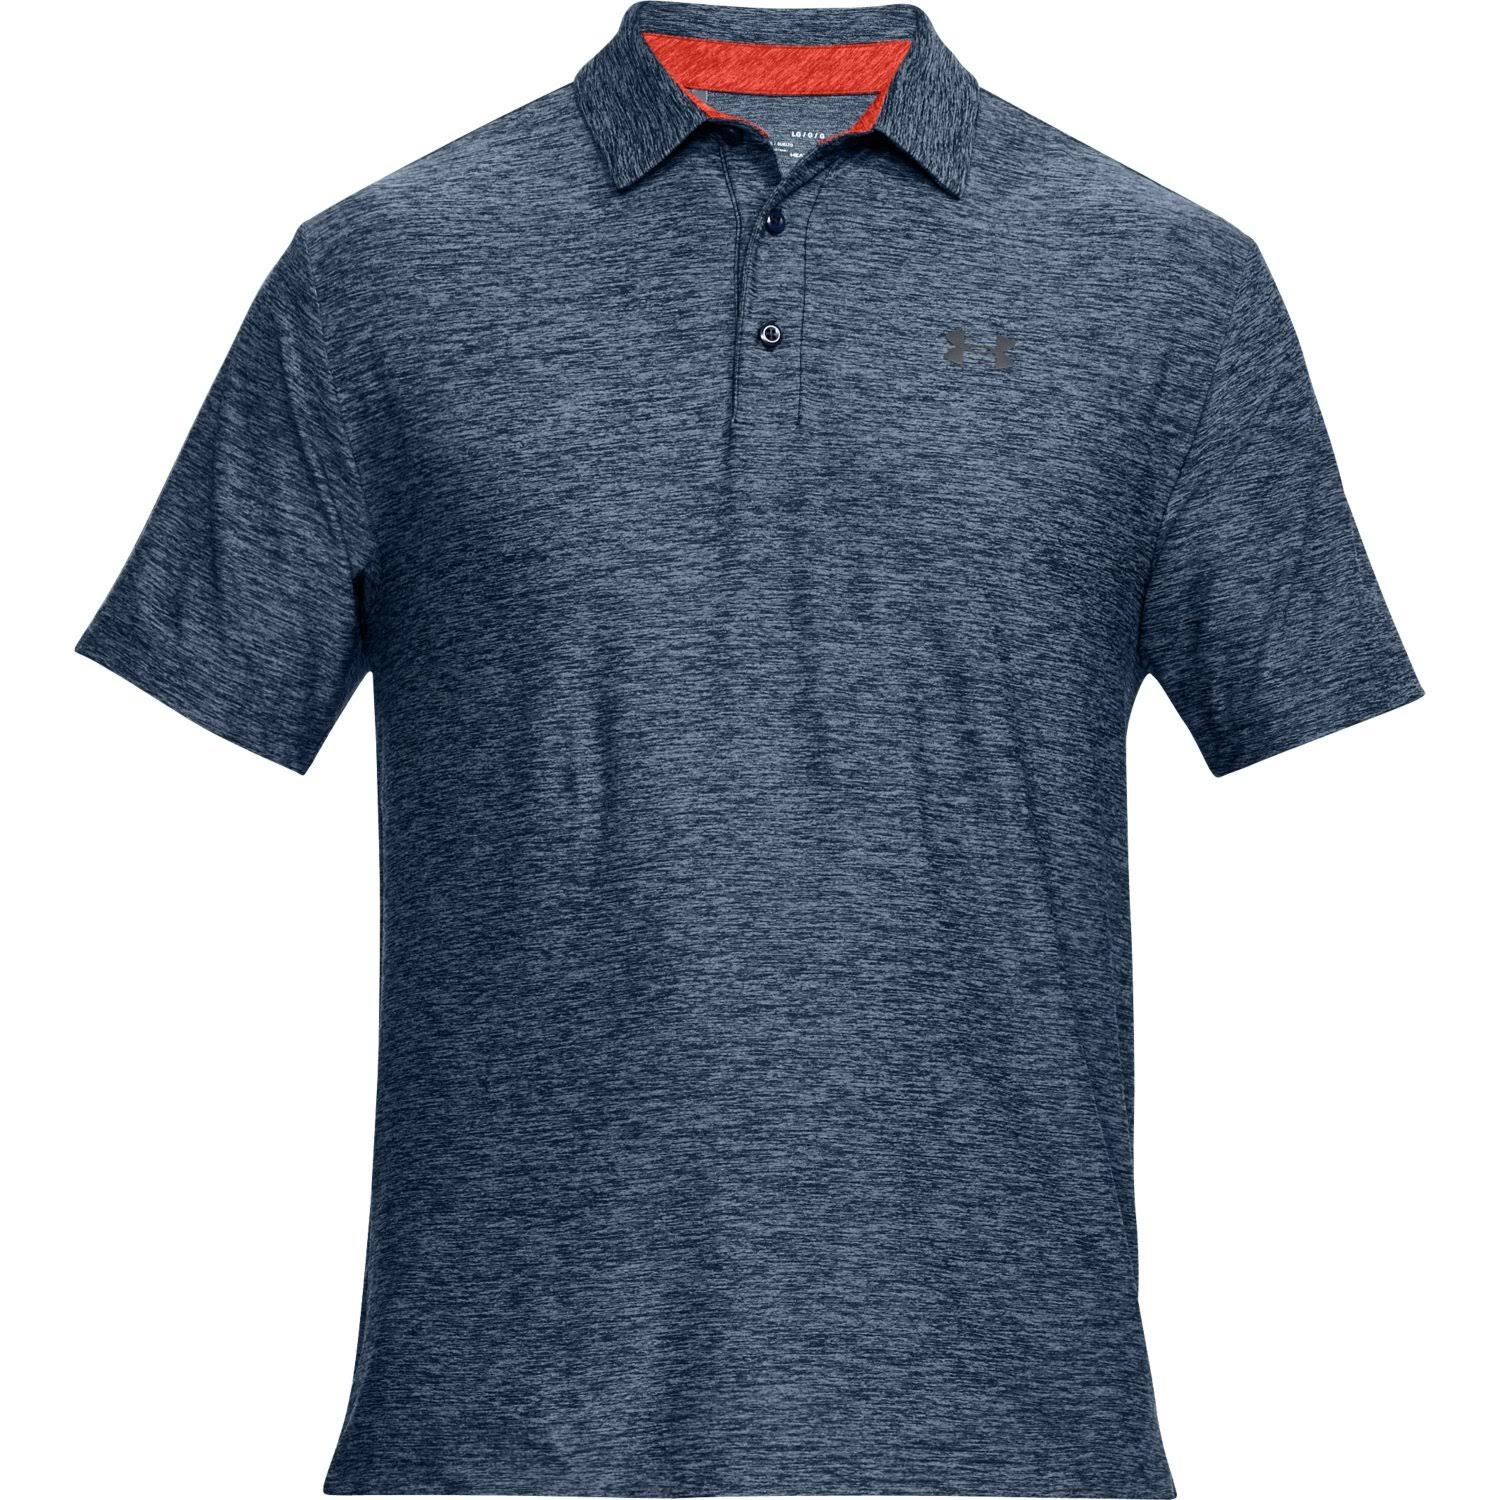 Armour Polo Playoff Playoff Herren Armour Polo Armour Herren Under Playoff Polo Under Herren Under vq8HOqM